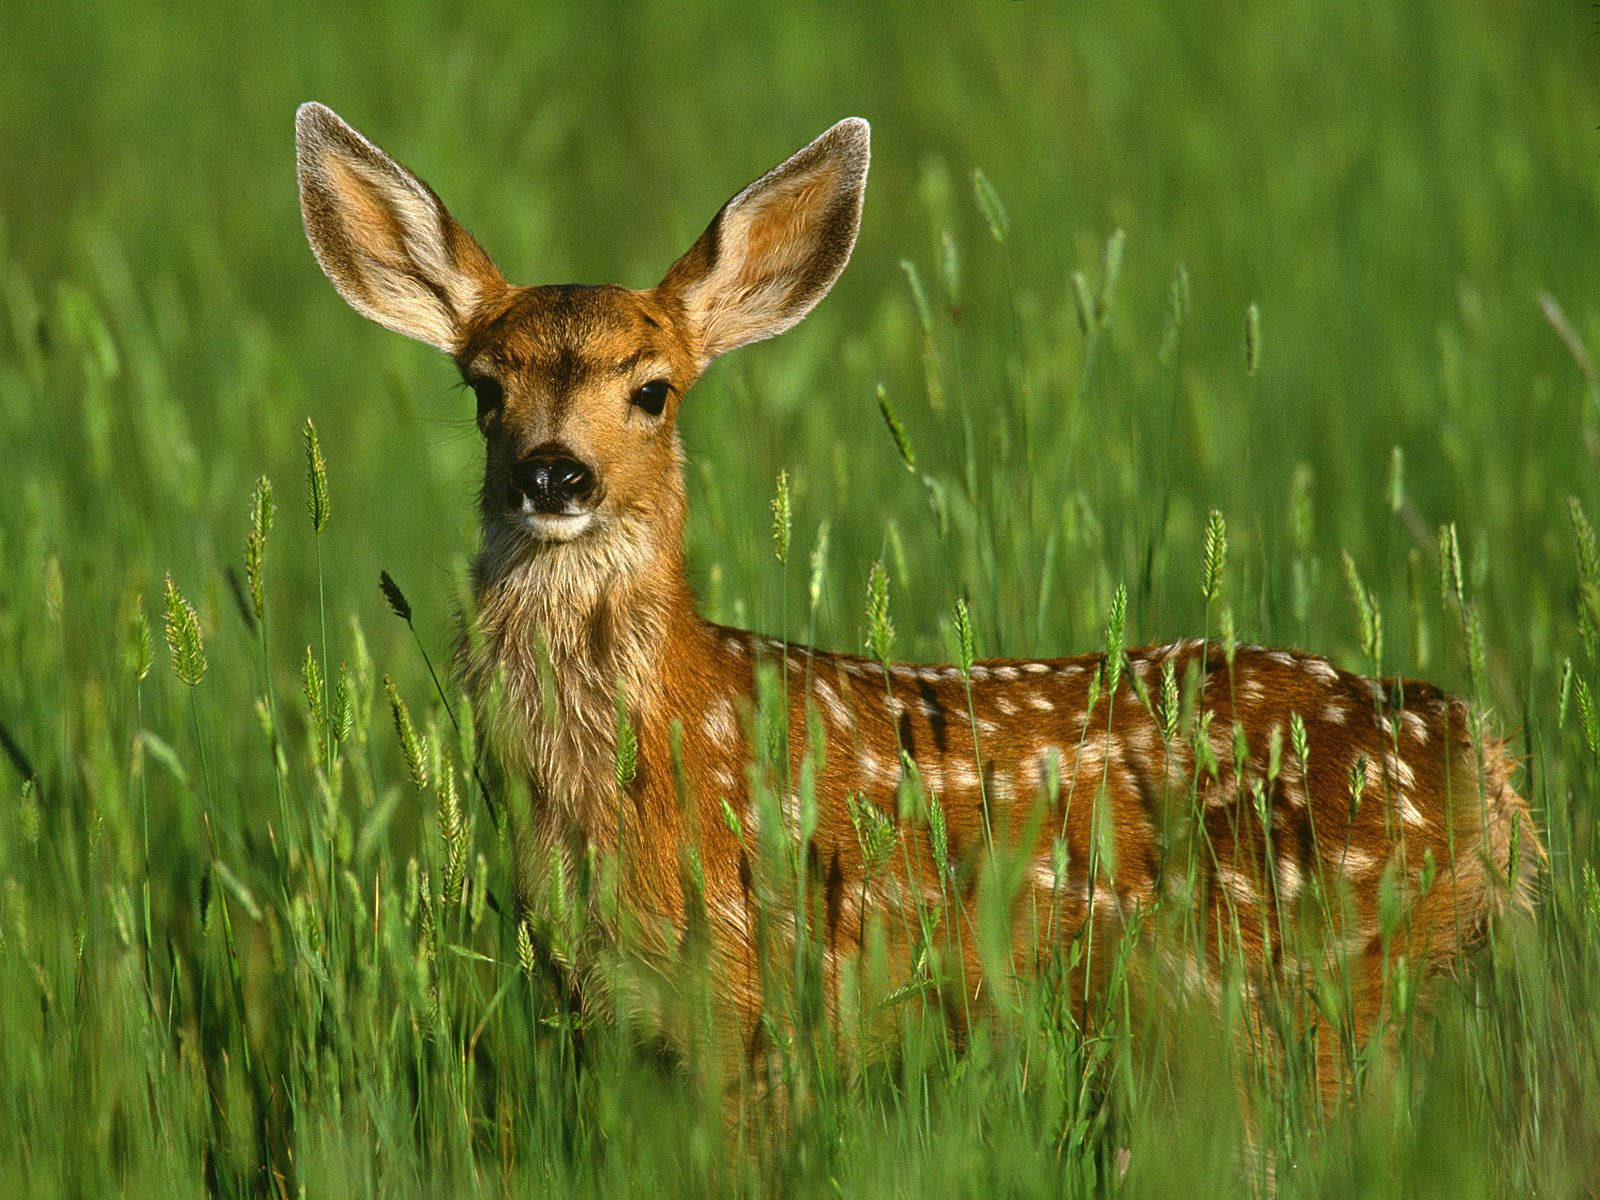 deer wildlife facts info animals wild dear animal nature doe baby cute fawn bing wallpapers fauna cervatillo pretty amazing adorable